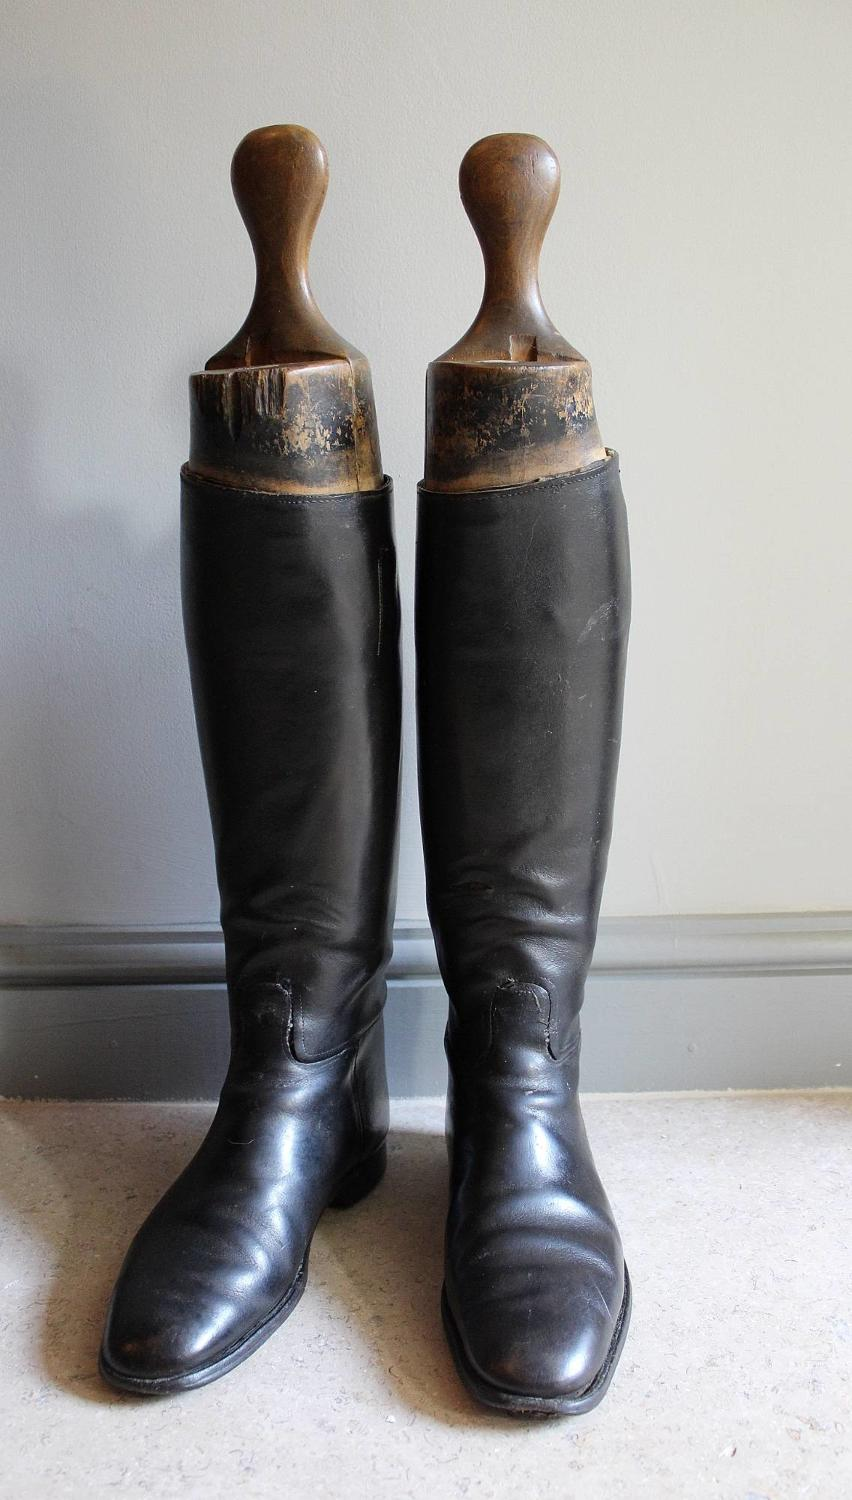 Pair of Antique Leather Riding Boots